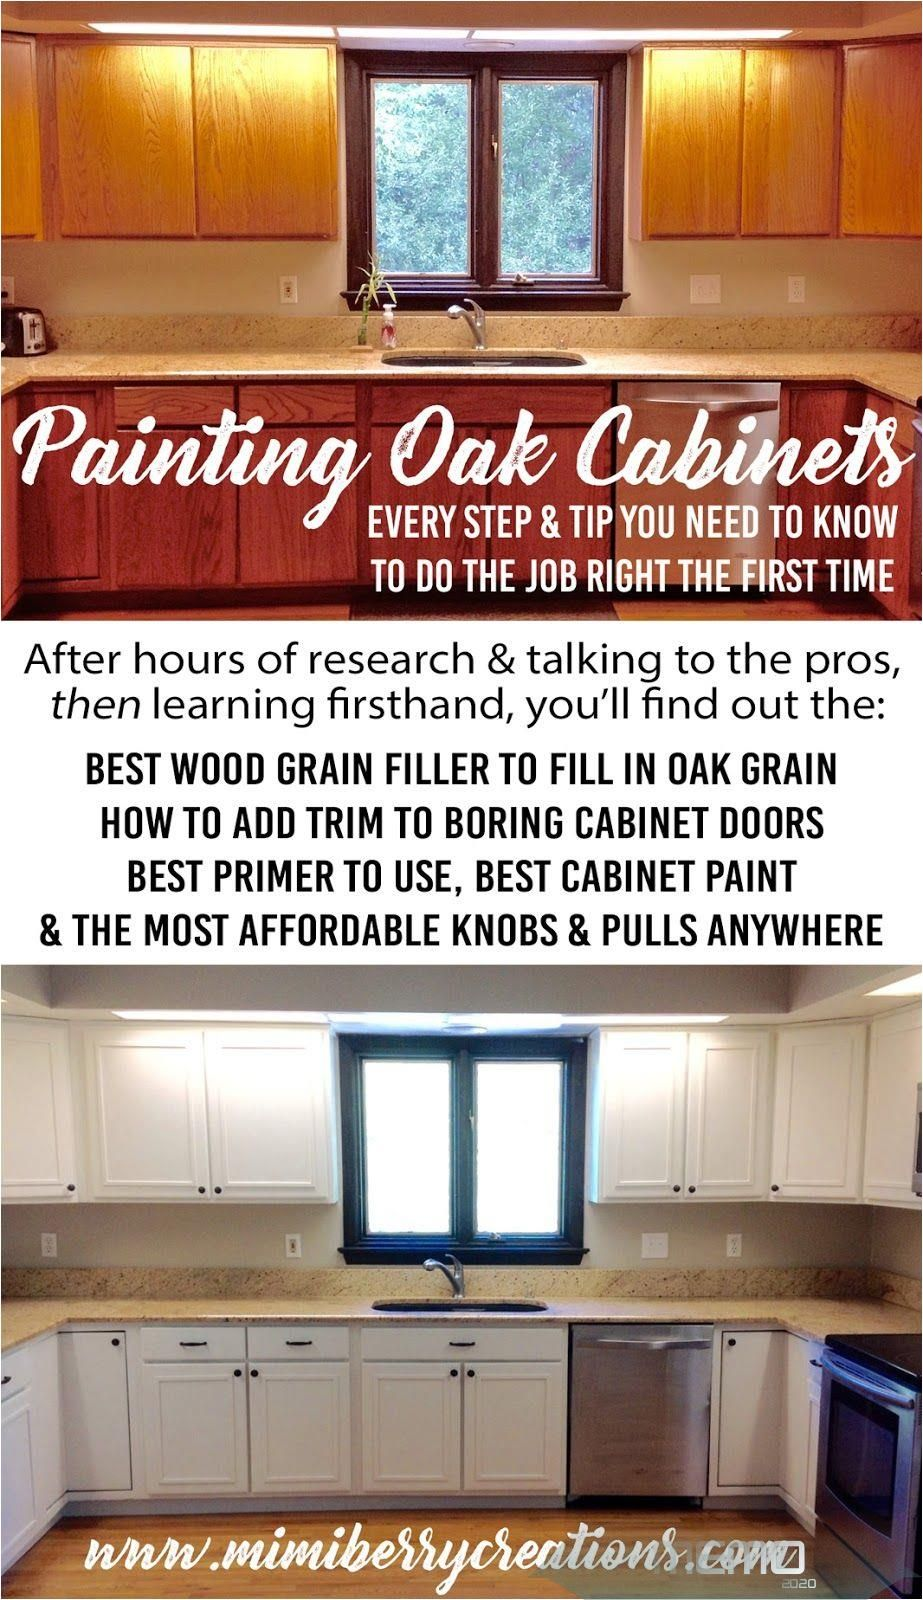 Feb 11 2018 Painting Oak Cabinets Does Not Need To Be Intimidating Anymore Find Out Every Product Painting Oak Cabinets Cheap Kitchen Cabinets Oak Cabinets